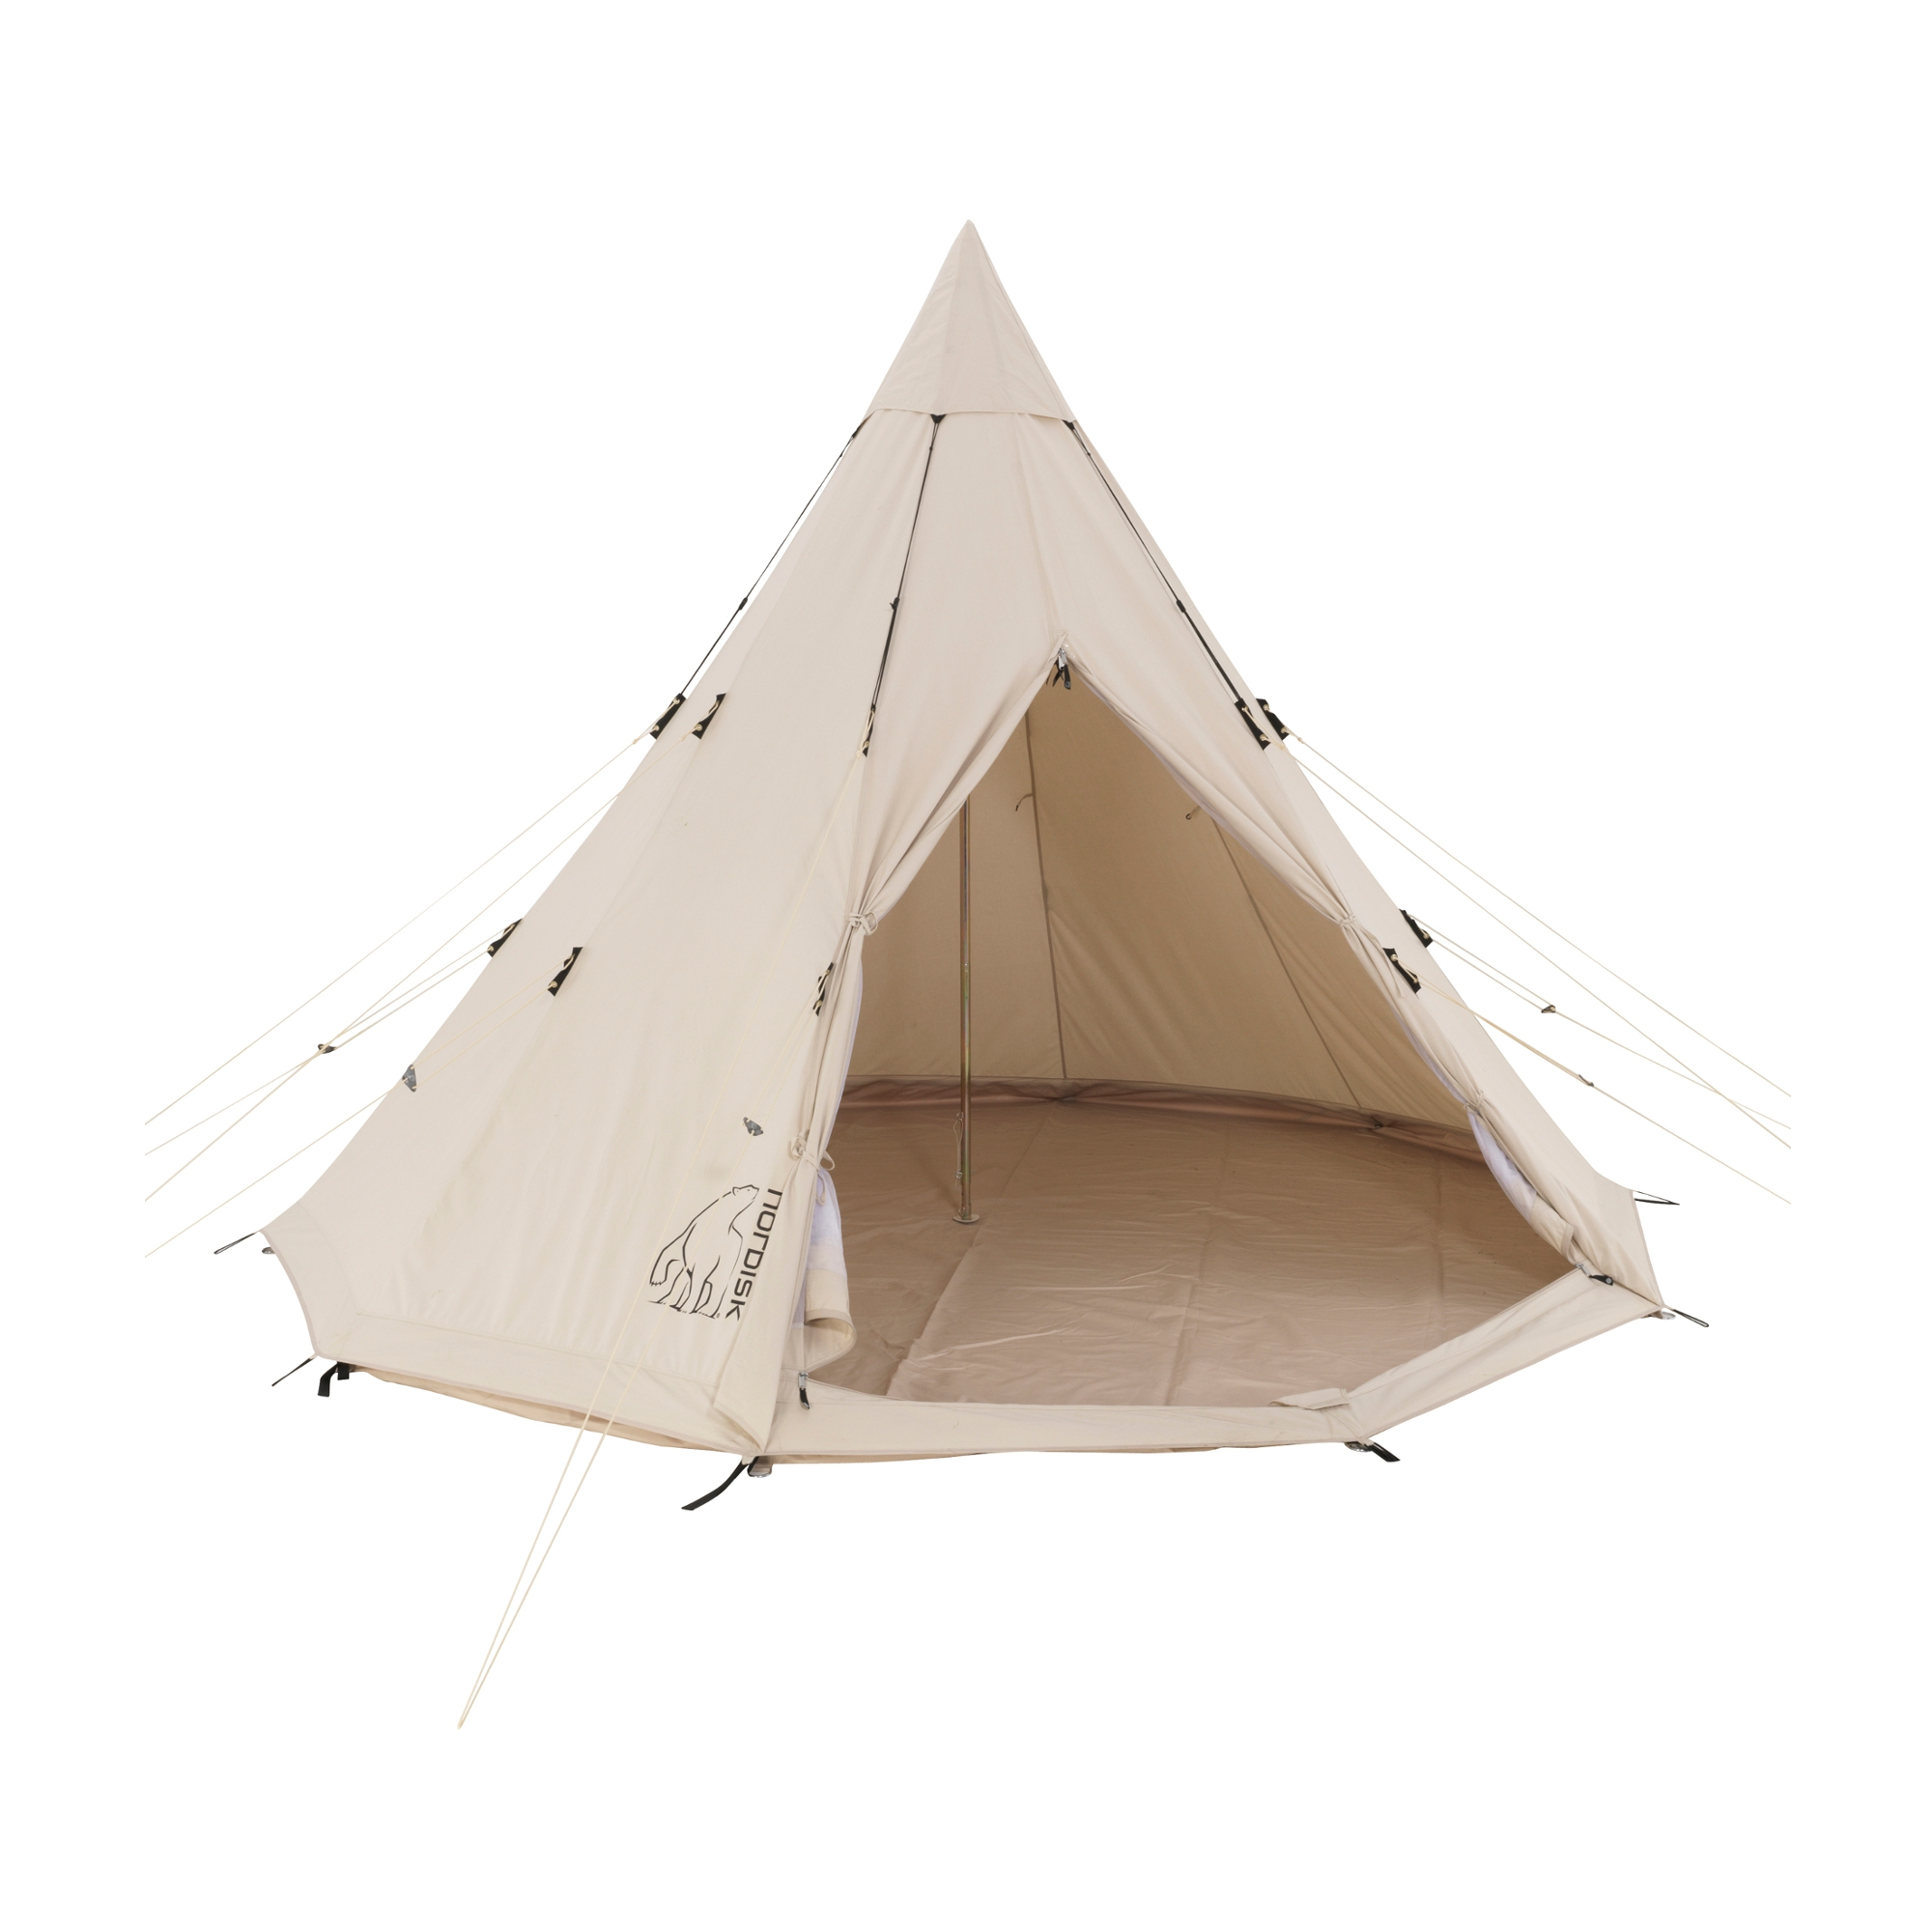 alfheim 19 6 organic cotton tipi zelt g nstig kaufen. Black Bedroom Furniture Sets. Home Design Ideas